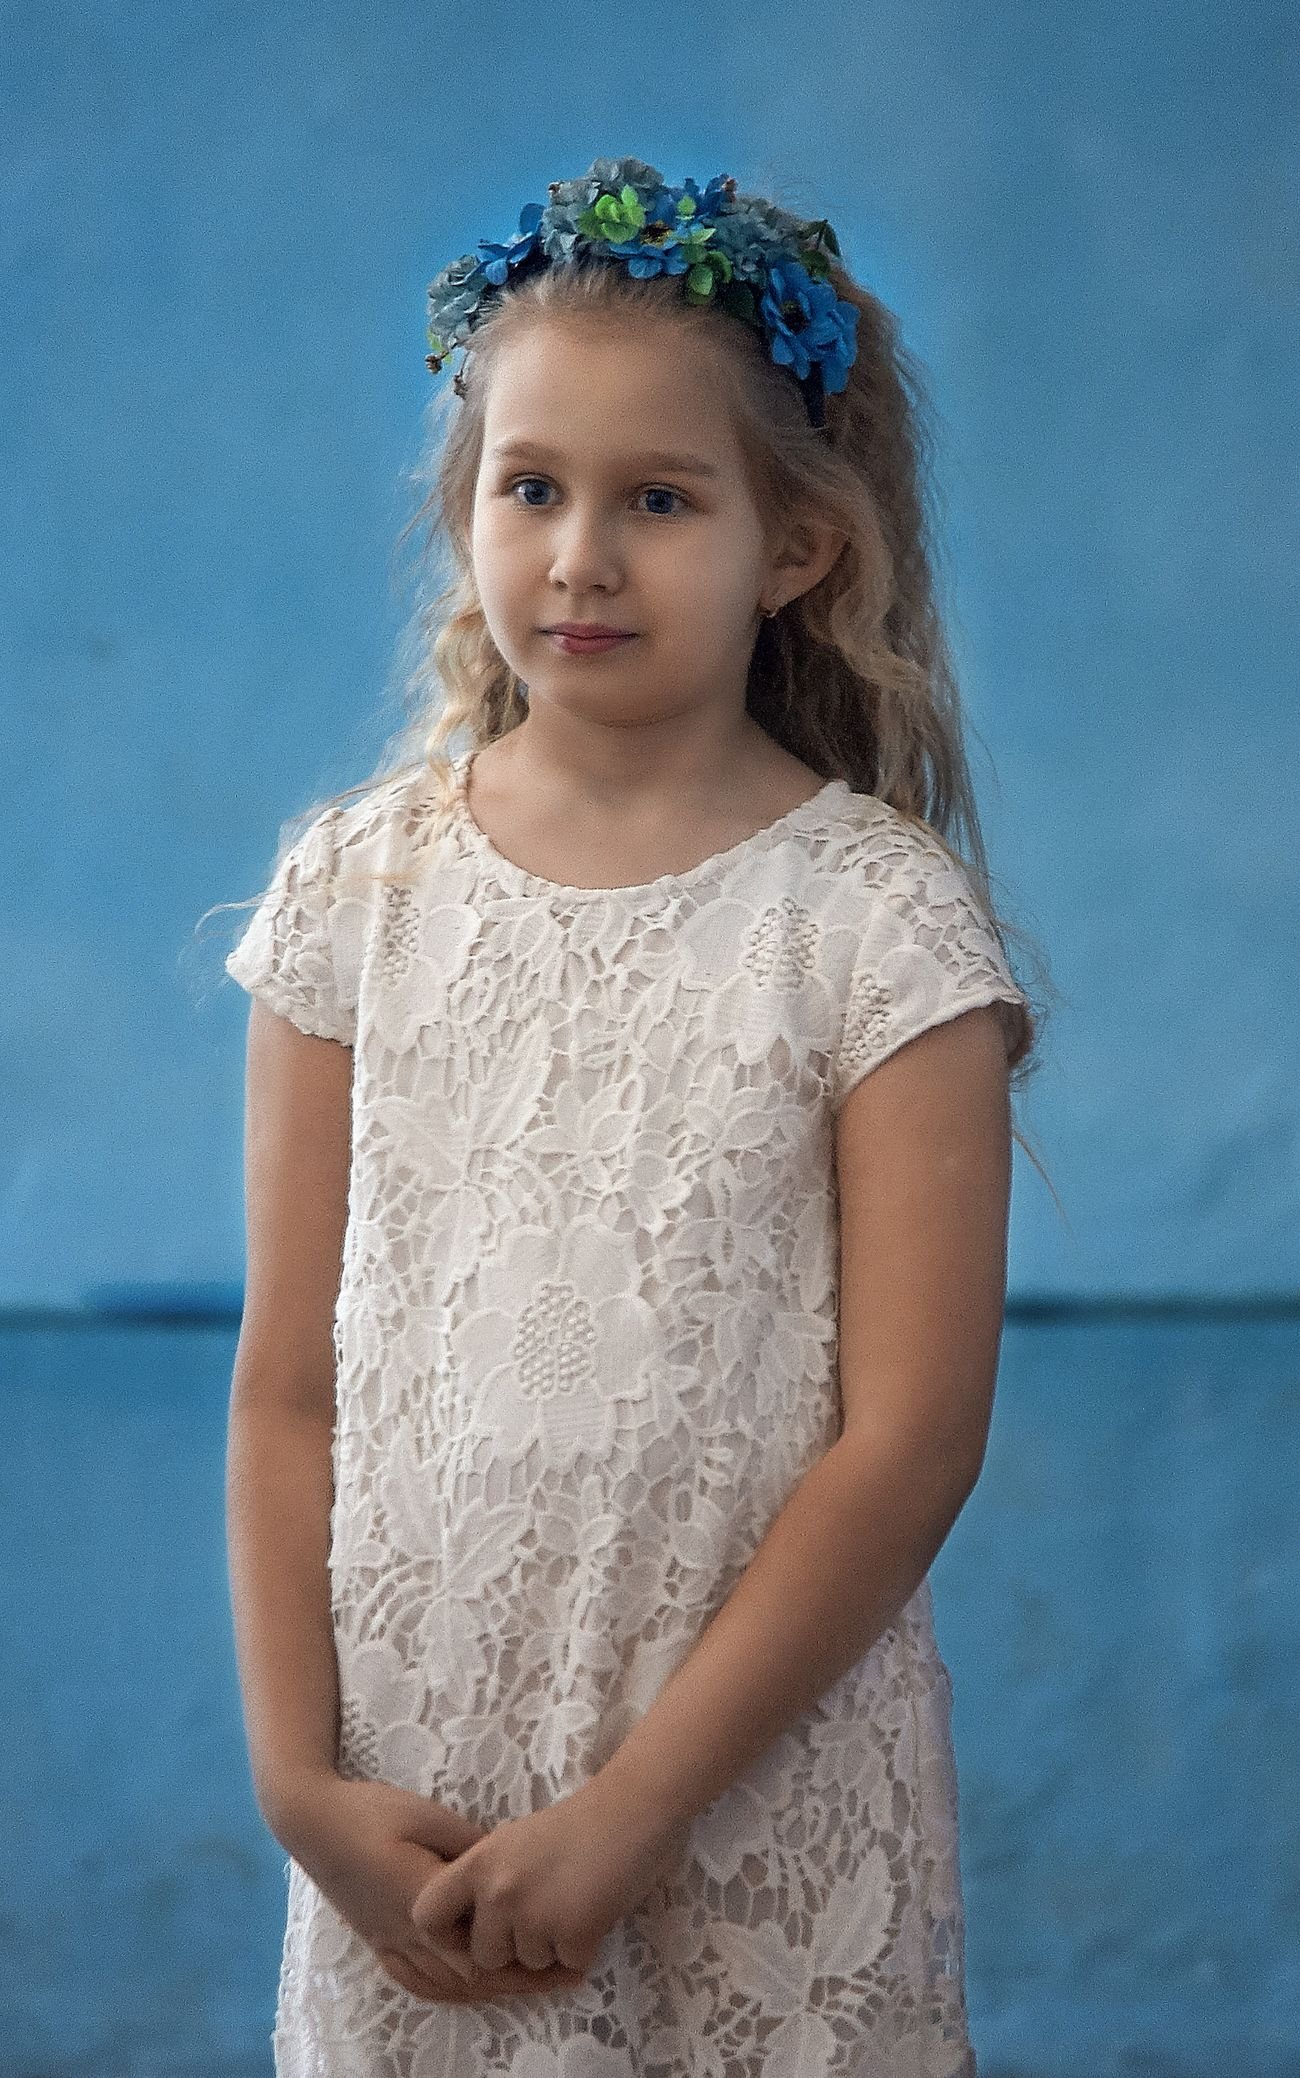 Little angel Russia Portraits Moment Work Childhood Looking At Camera Portrait Children Only One Girl Only Front View Tiara Adult Child EyeEm Best Shots Portrait Photography